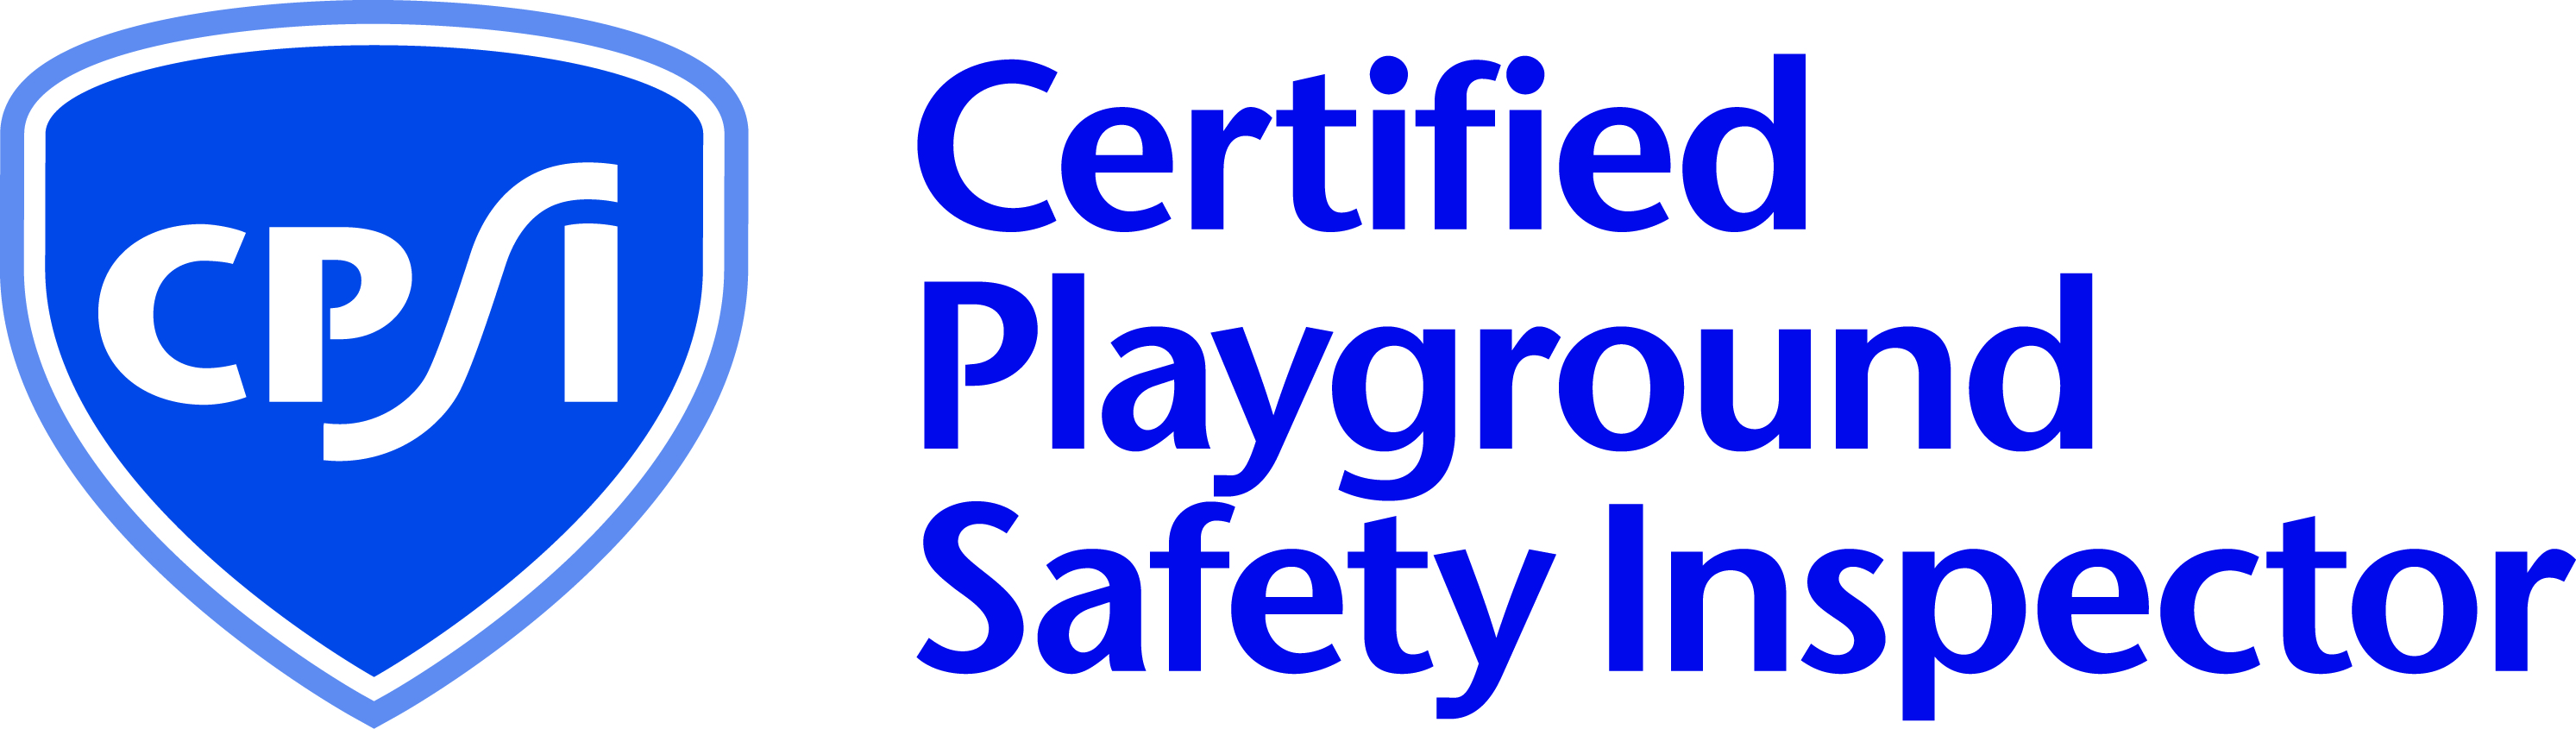 2020 Certified Playground Safety Inspector Course & Exam - State College